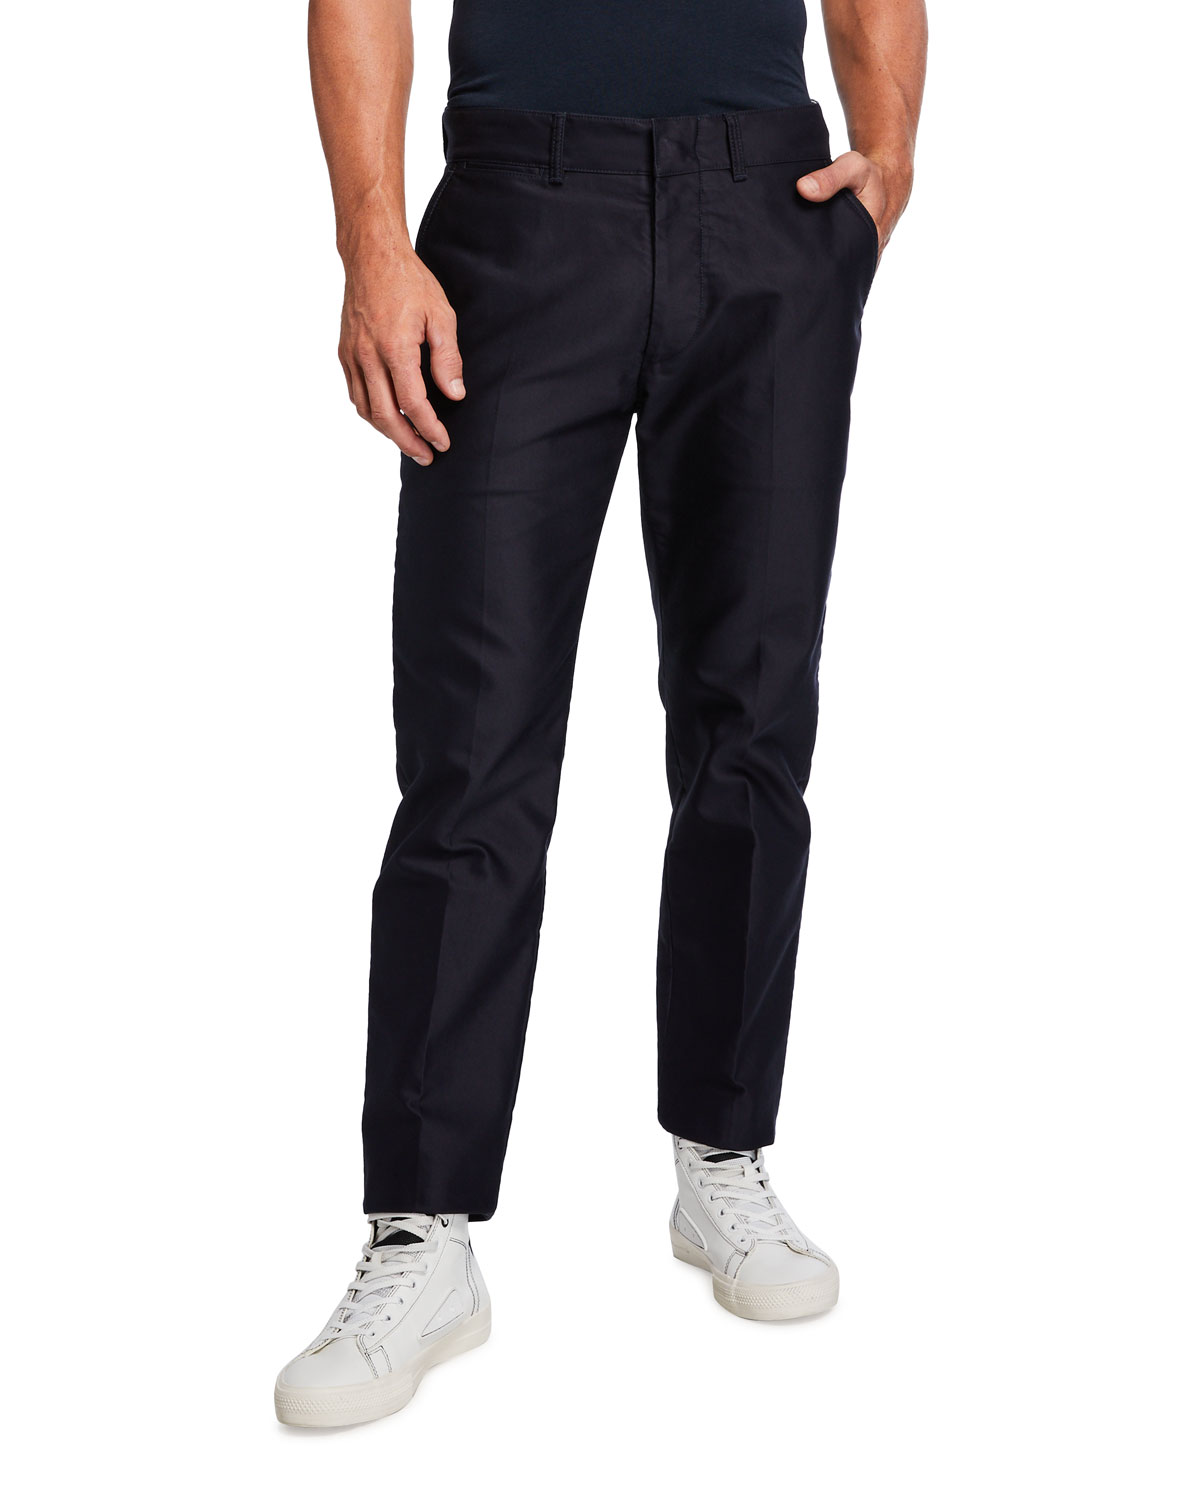 Tom Ford Cottons MEN'S MILITARY CHINO PANTS